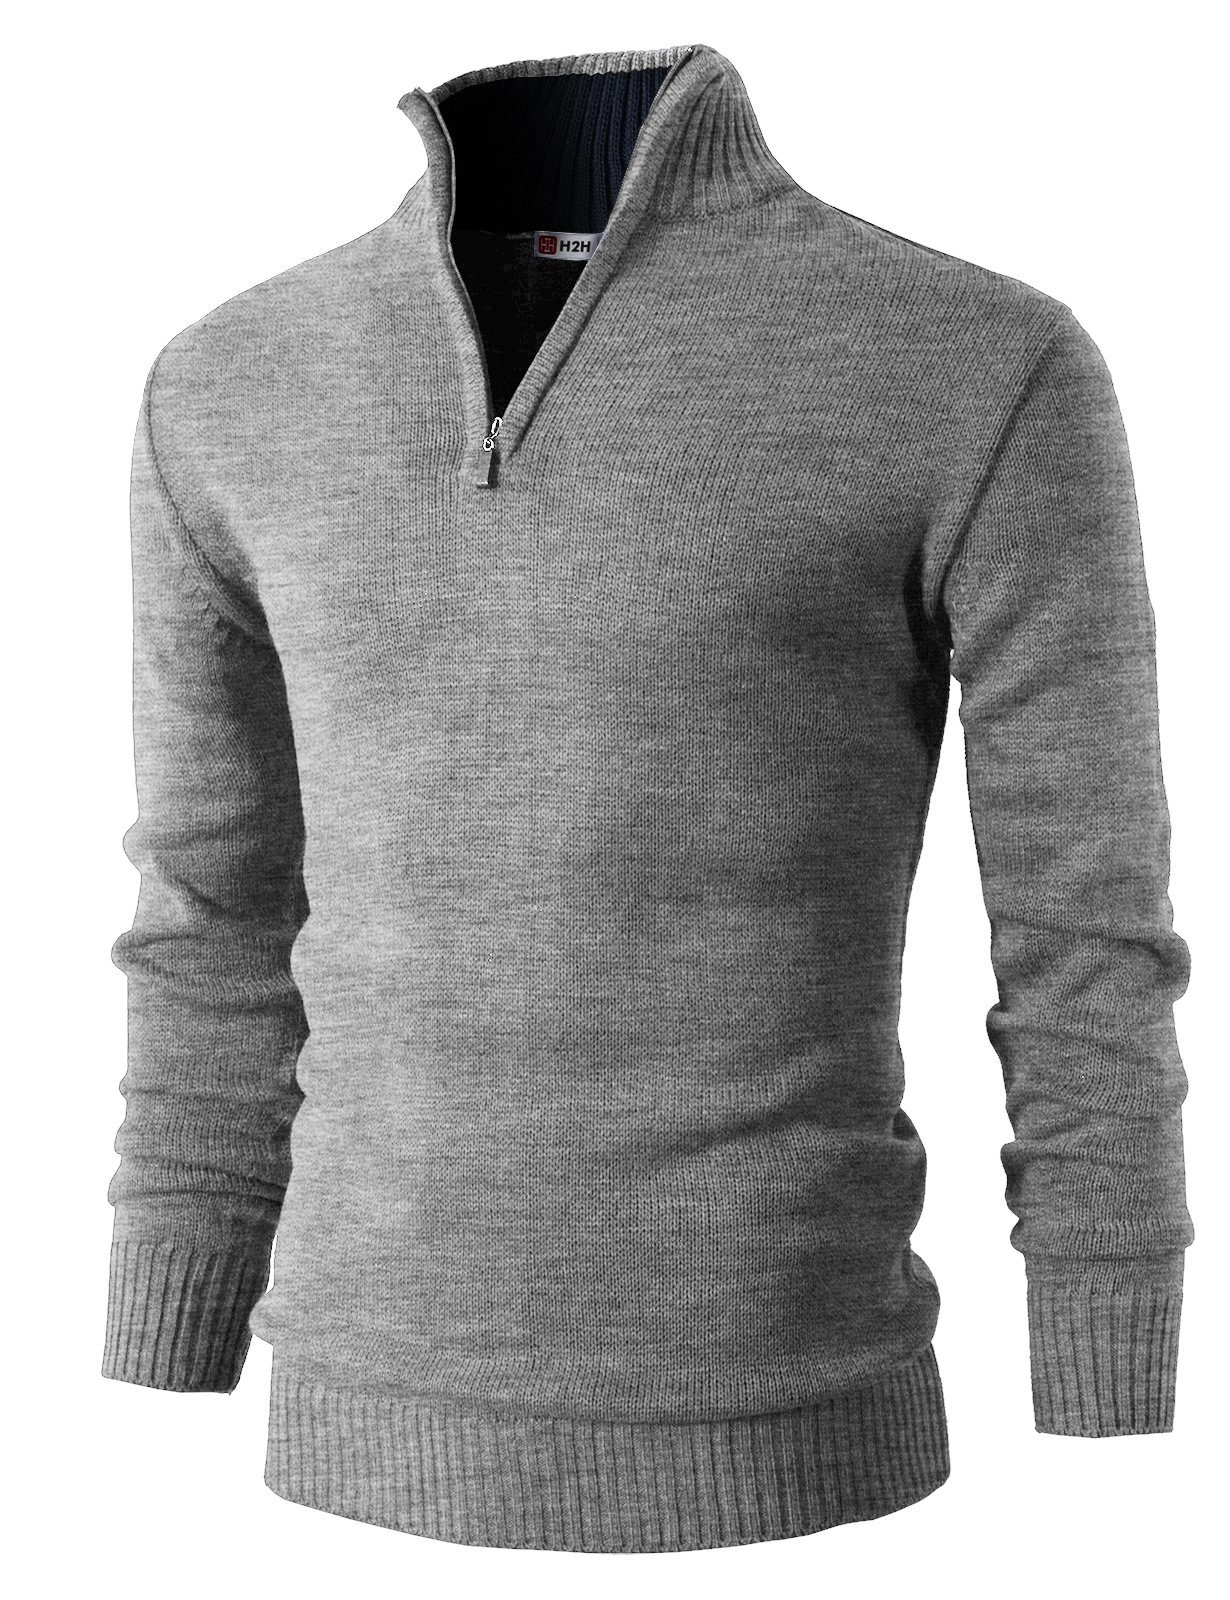 H2H Mens Casual Basic Pullover Sweater of Neck Zipper GRAY US L/Asia XL (KMOSWL021)